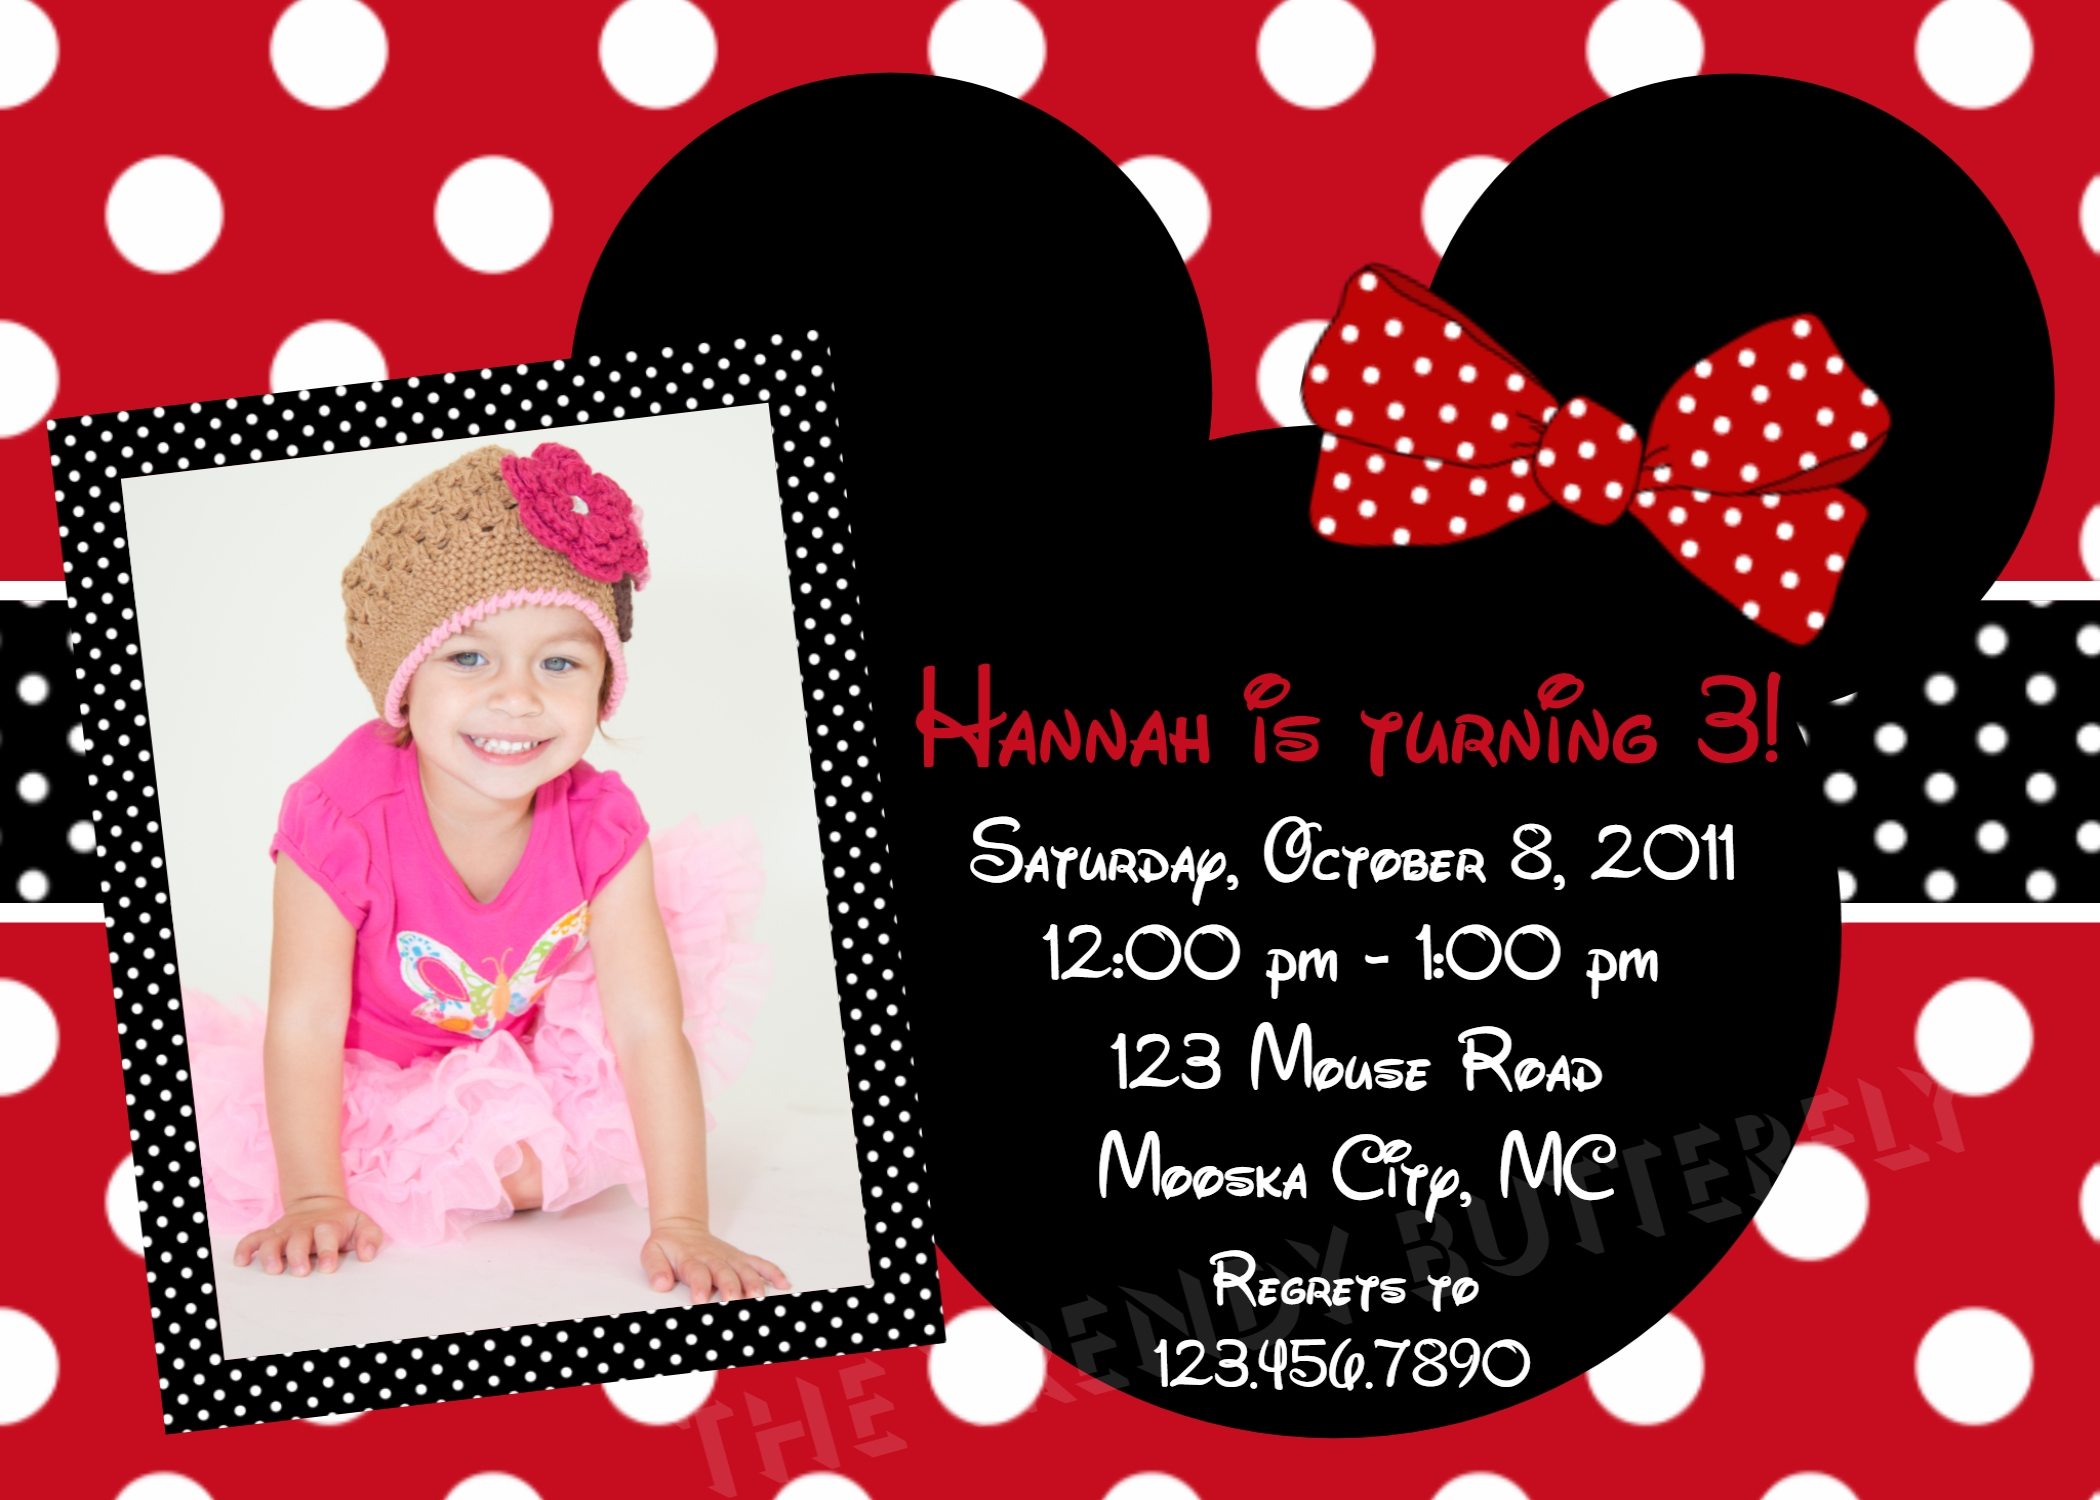 birthday invitation minnie mouse theme ; Red-Minnie-Mouse-Birthday-Invitations-combined-with-your-creativity-will-make-this-looks-awesome-1